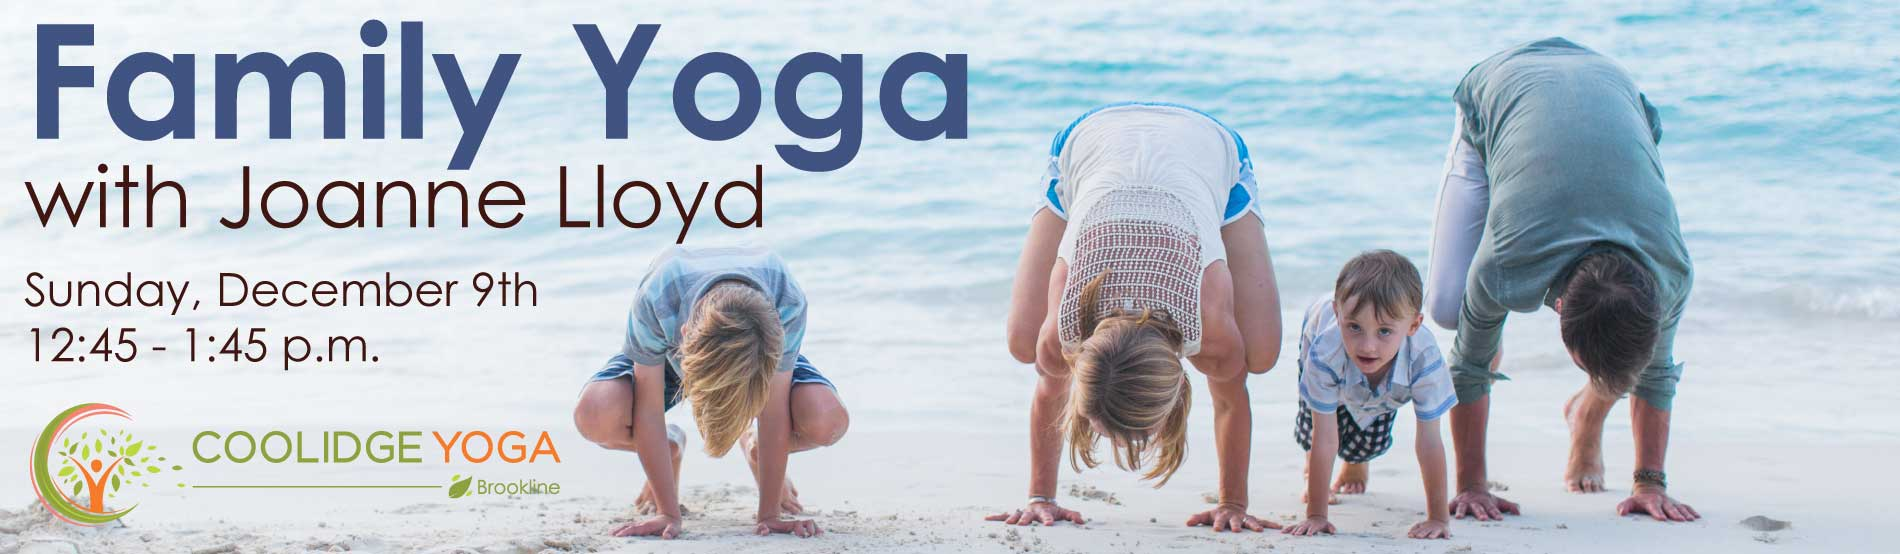 Family Yoga at Coolidge Yoga